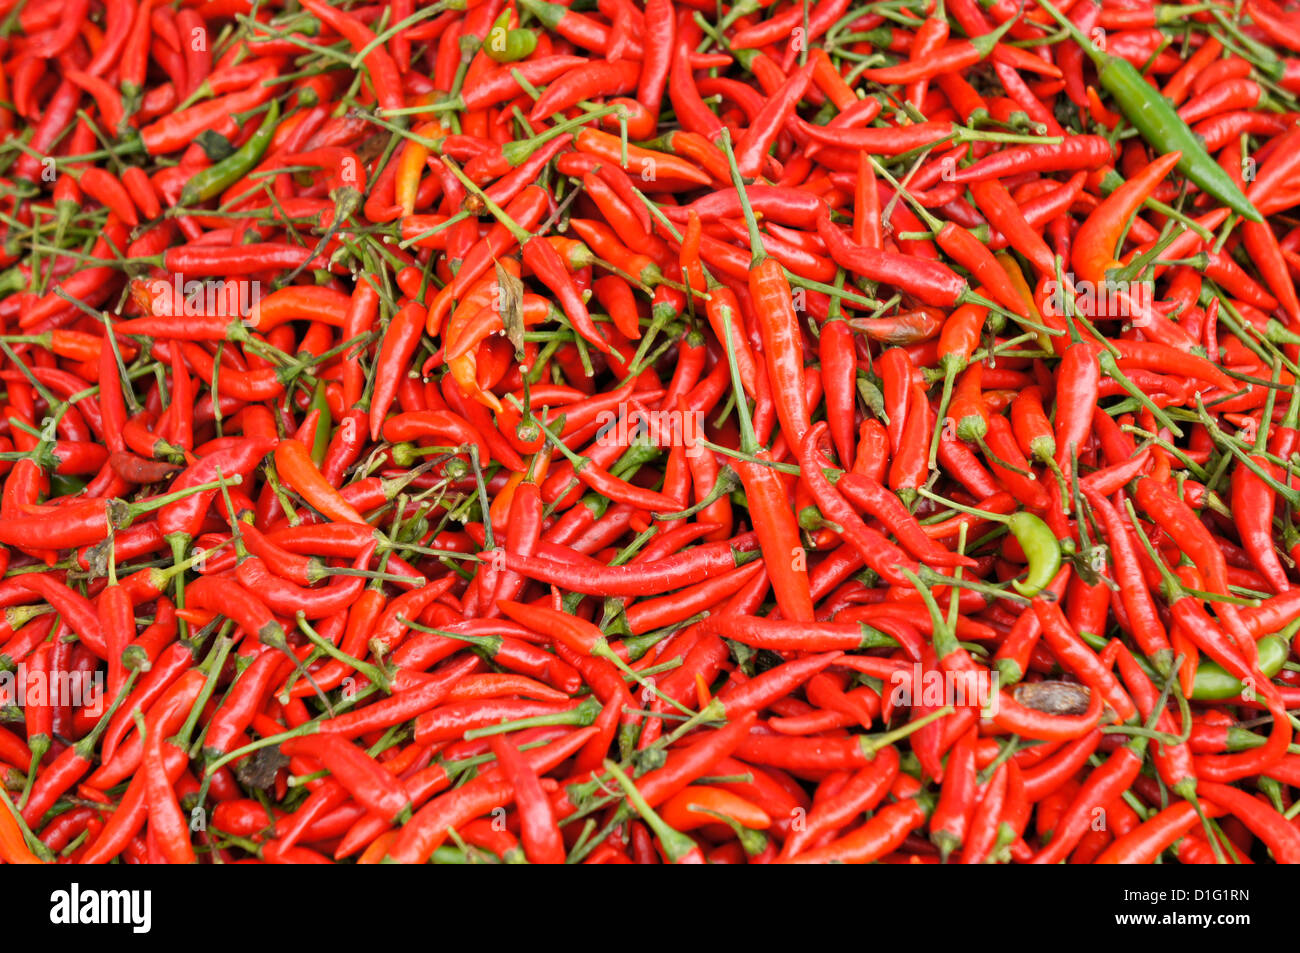 Birds eye chilli or cili padi at market in kuching malaysia stock birds eye chilli or cili padi at market in kuching malaysia altavistaventures Images